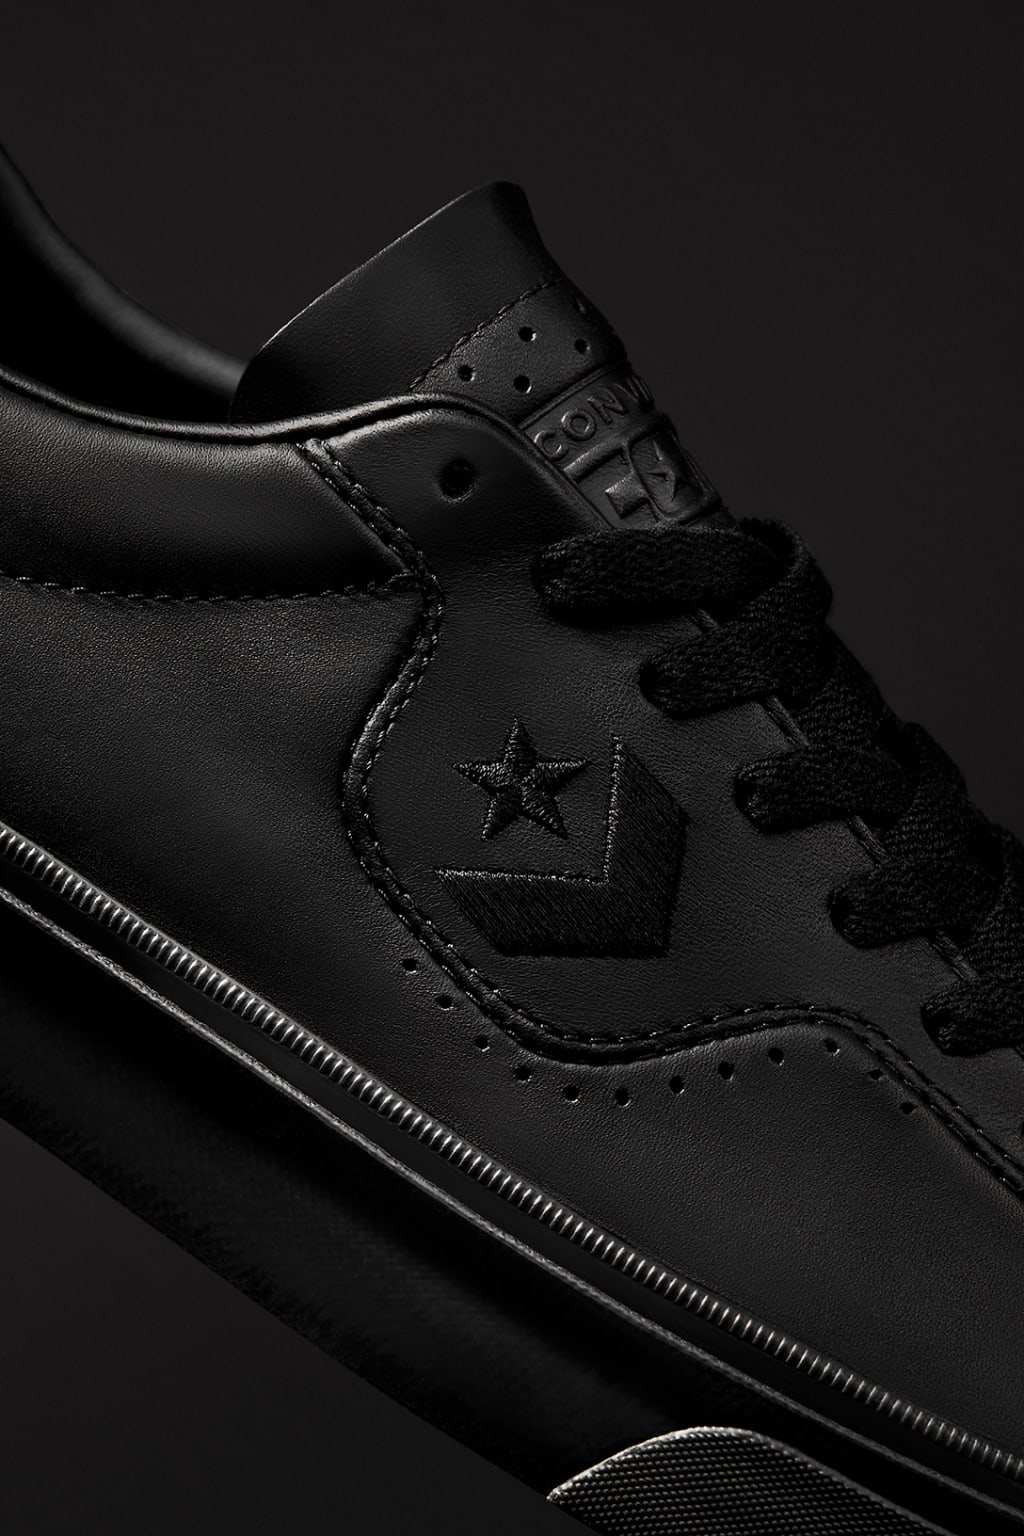 Converse unveils the Leather Louie Lopez Pro